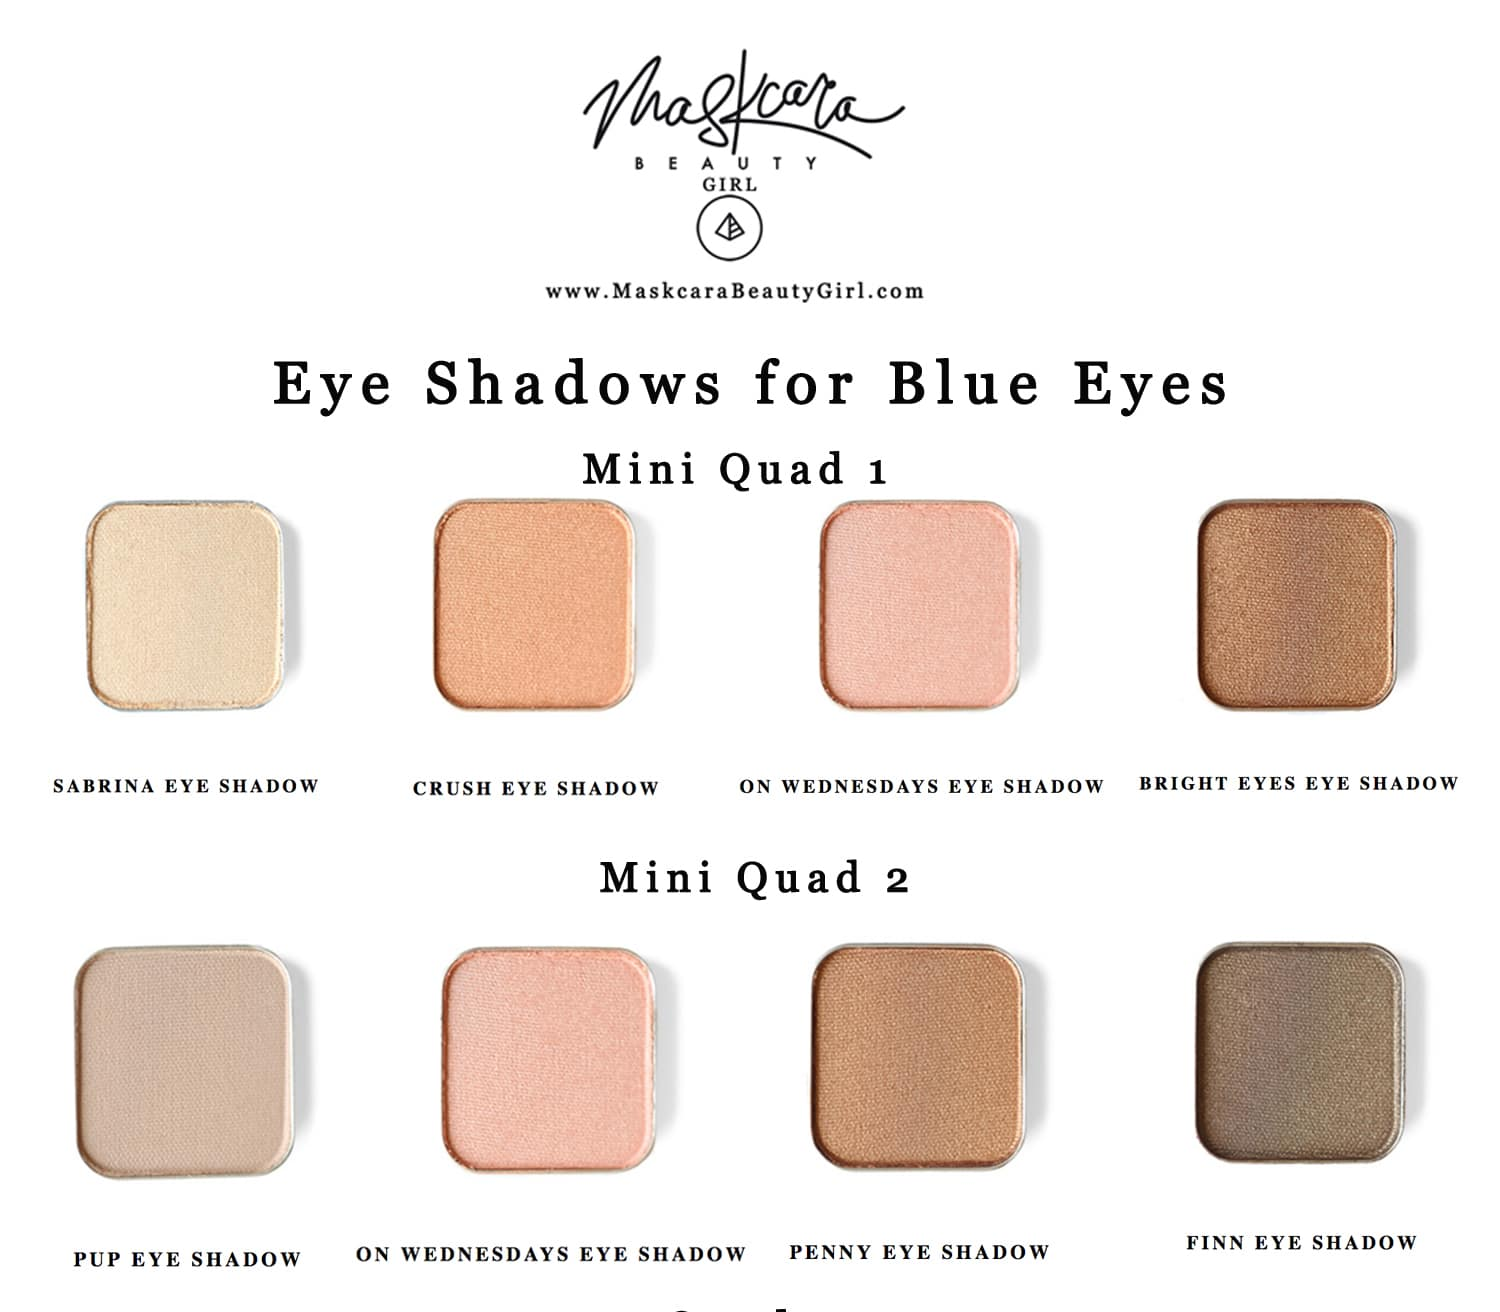 Best Eye Shadow for Blue Eyes with Maskcara Makeup How to choose your Maskcara eyeshadow Which quad to choose for www.MaskcaraBeautyGirl.com